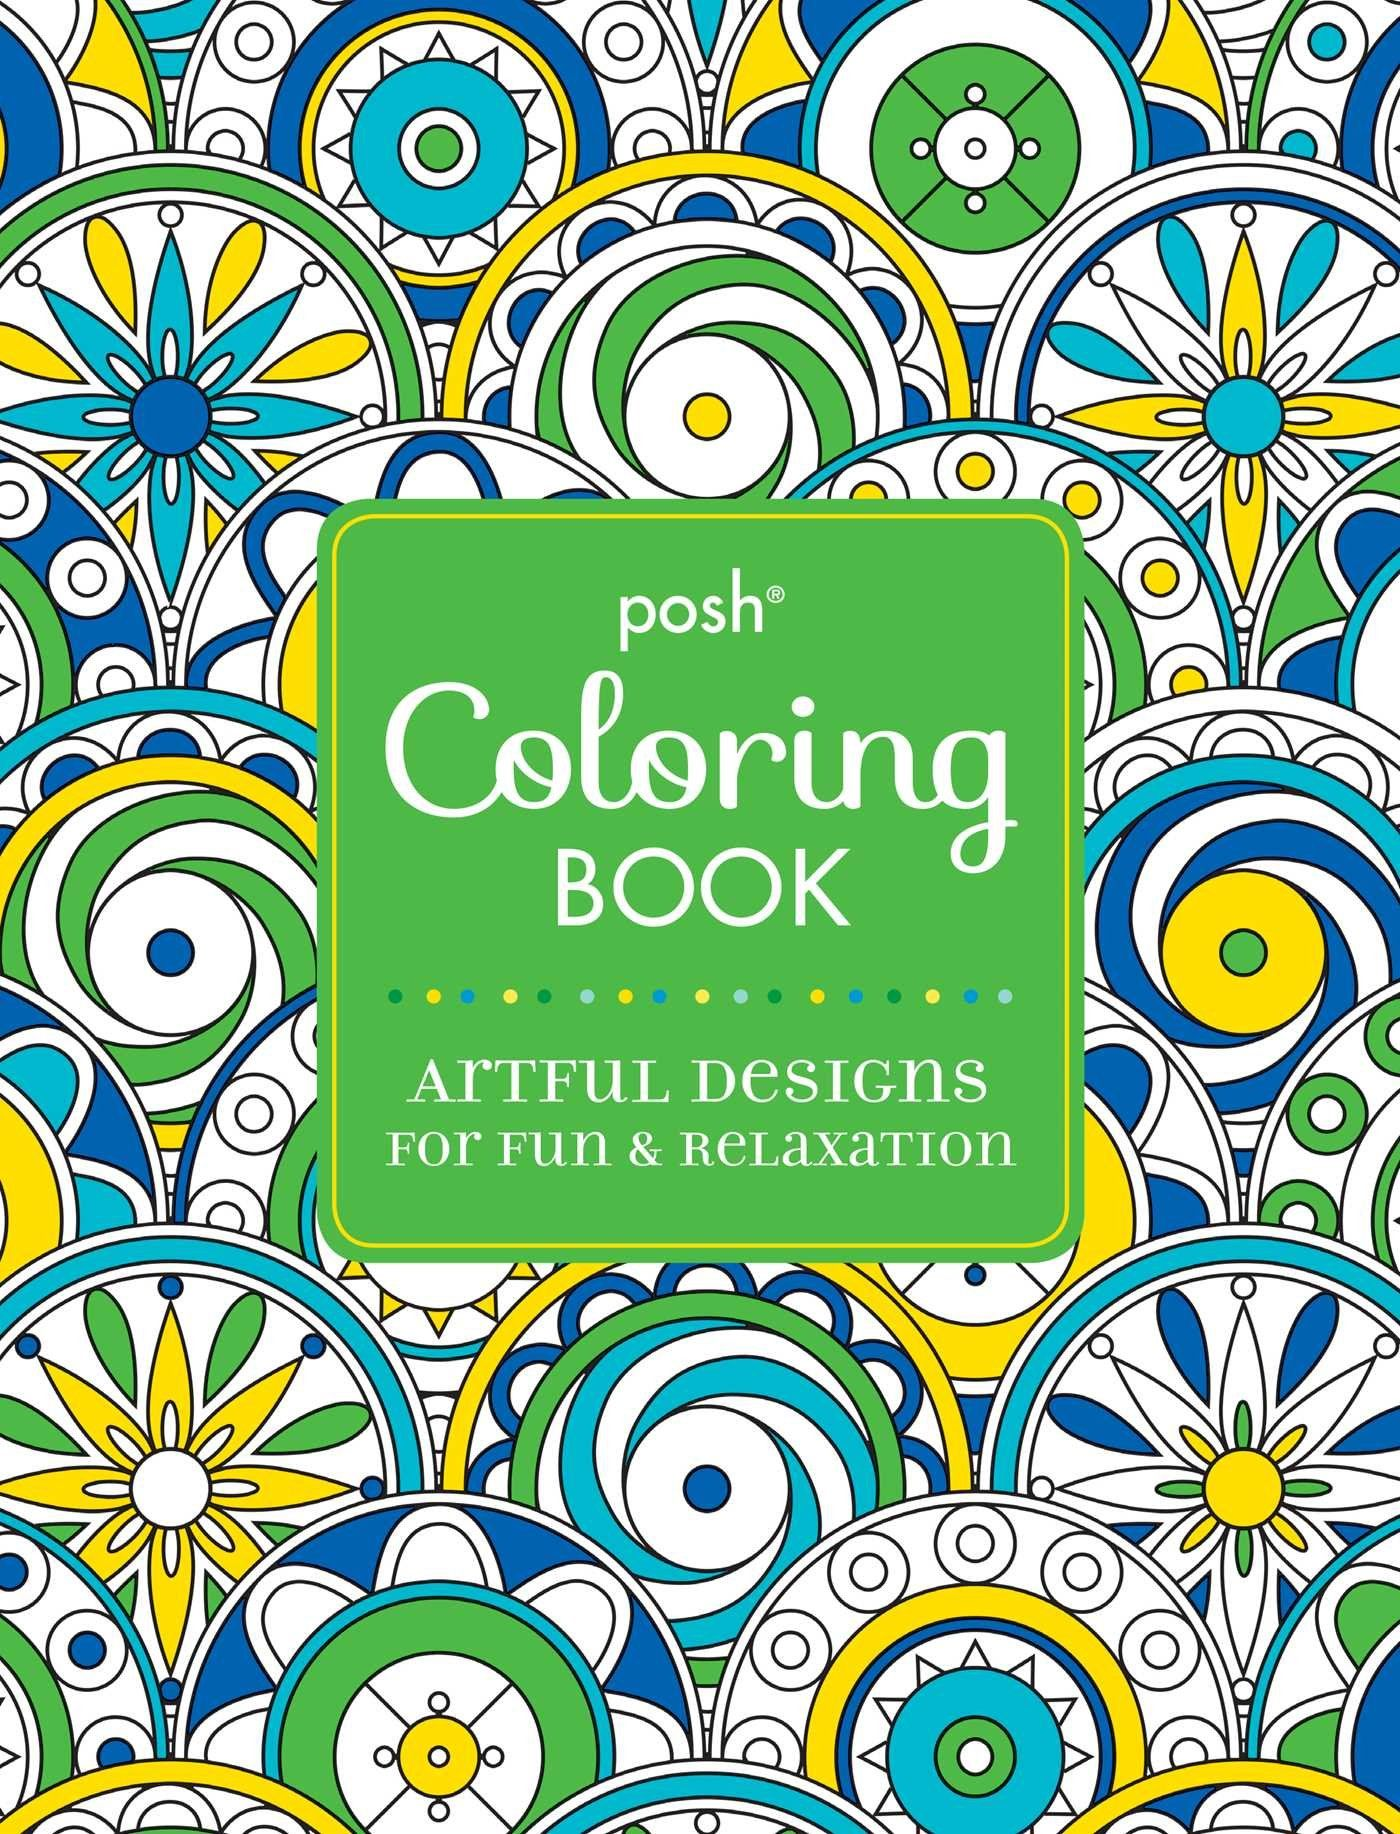 amazoncom posh adult coloring book artful designs for fun and relaxation - How To Publish A Coloring Book